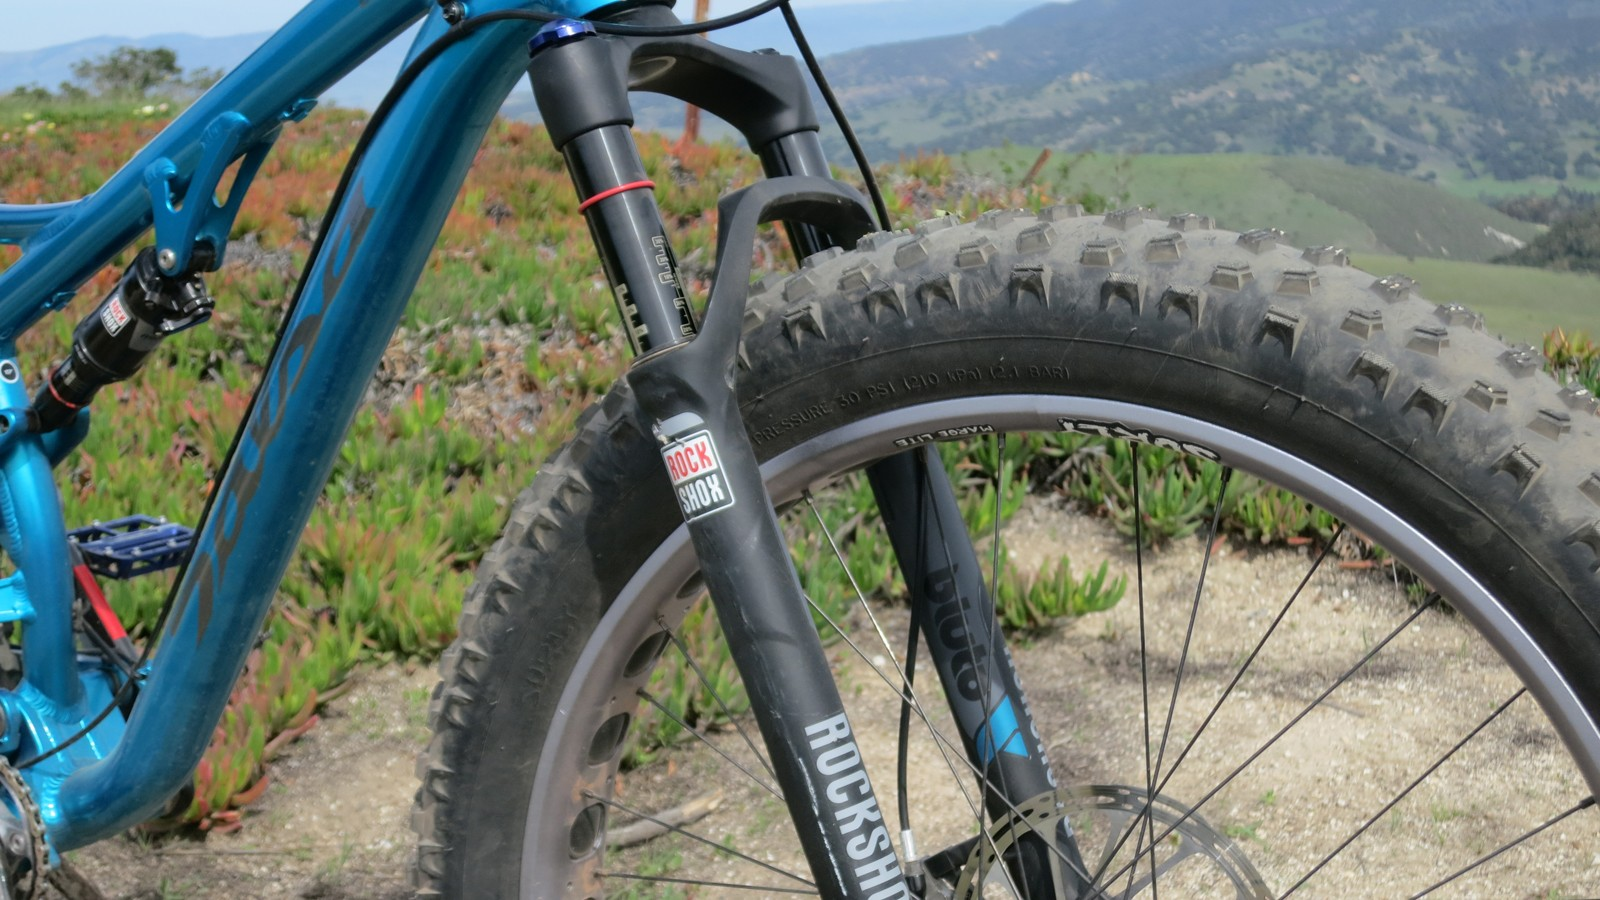 The Bucksaw comes with RockShox new Bluto fat suspension fork